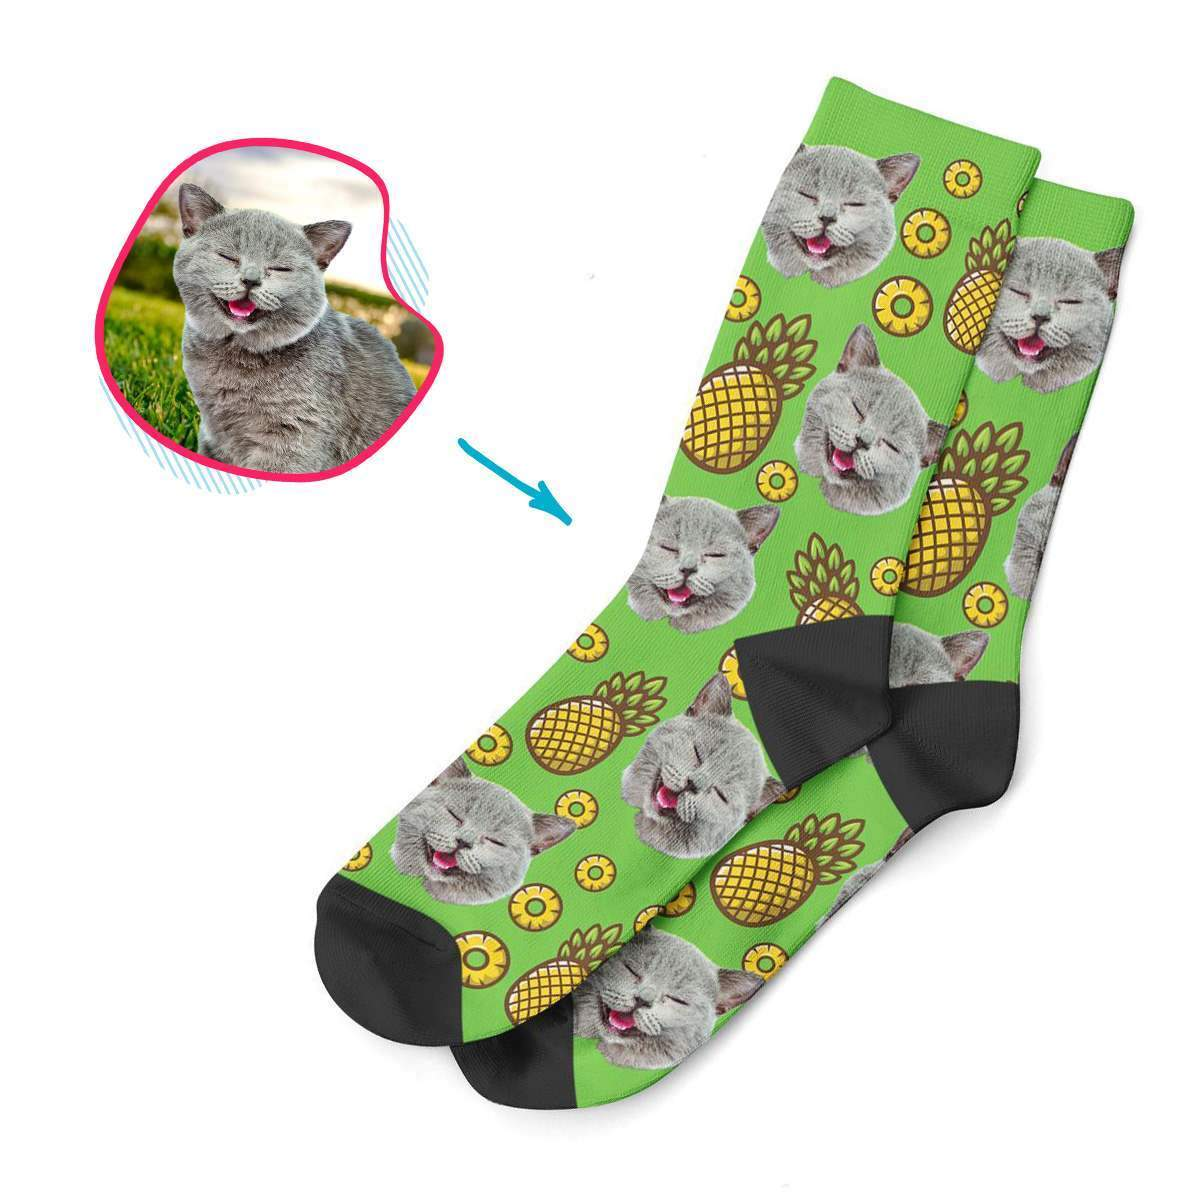 green Fruits socks personalized with photo of face printed on them